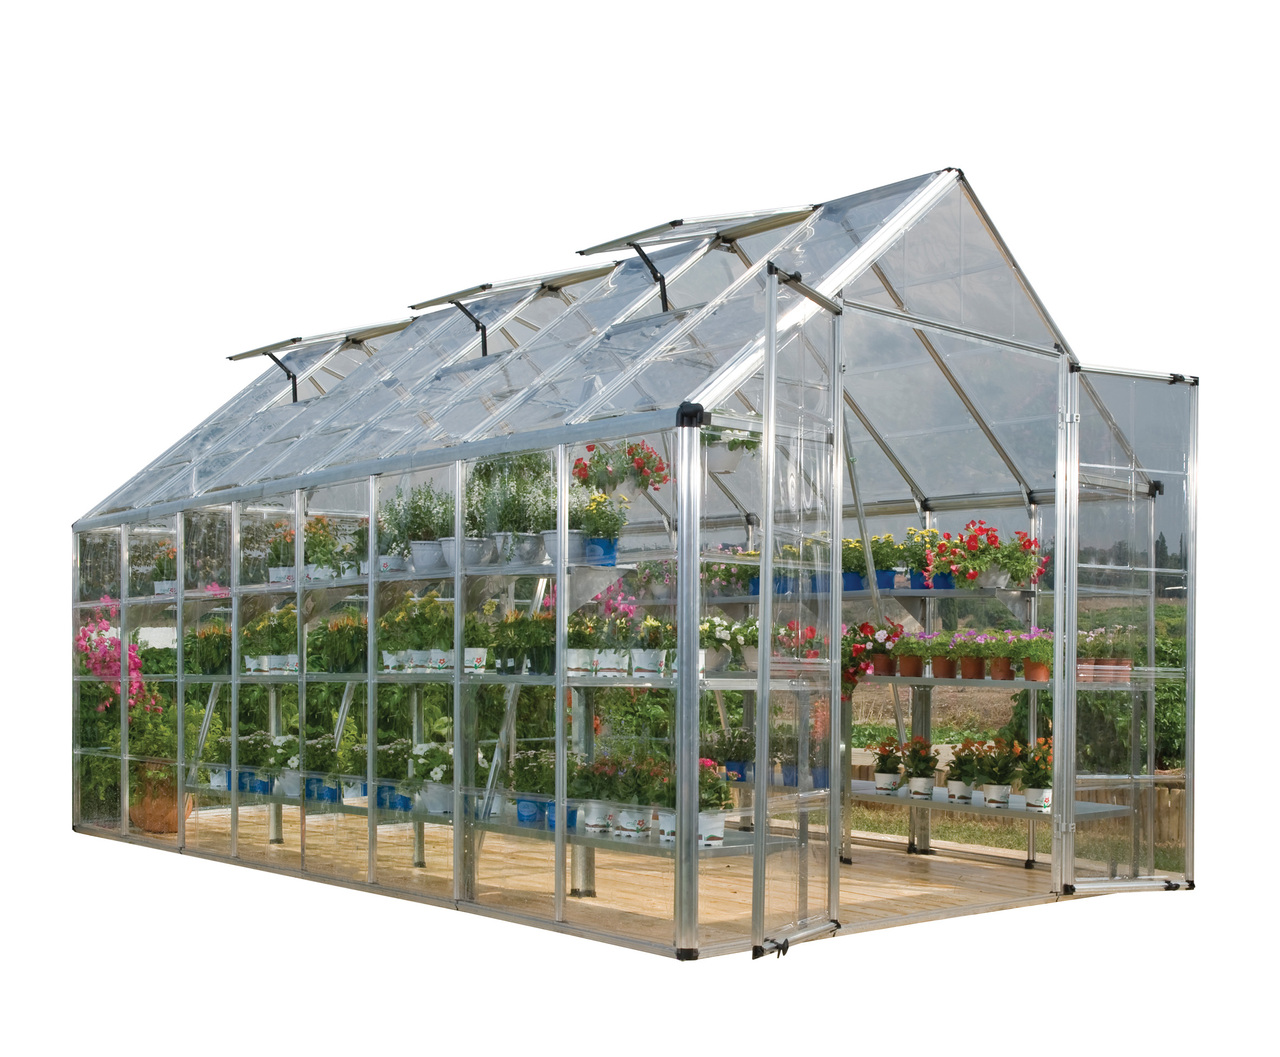 Palram Snap & Grow 8' x 16' Hobby Greenhouse - Silver